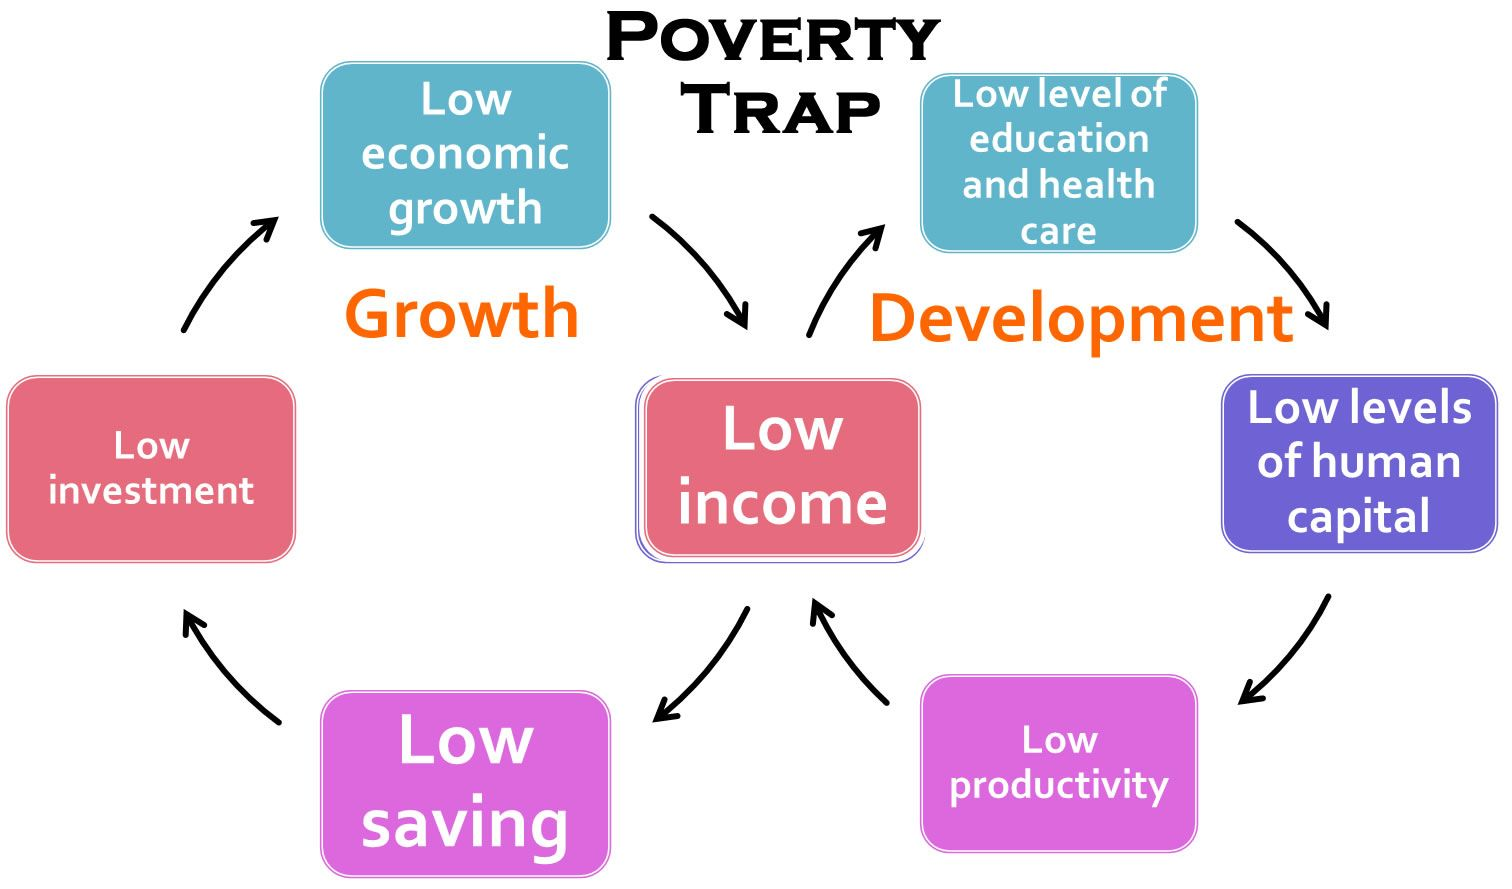 cycle of poverty theory the diagram below illustrates a poverty cycle of poverty theory the diagram below illustrates a poverty trap